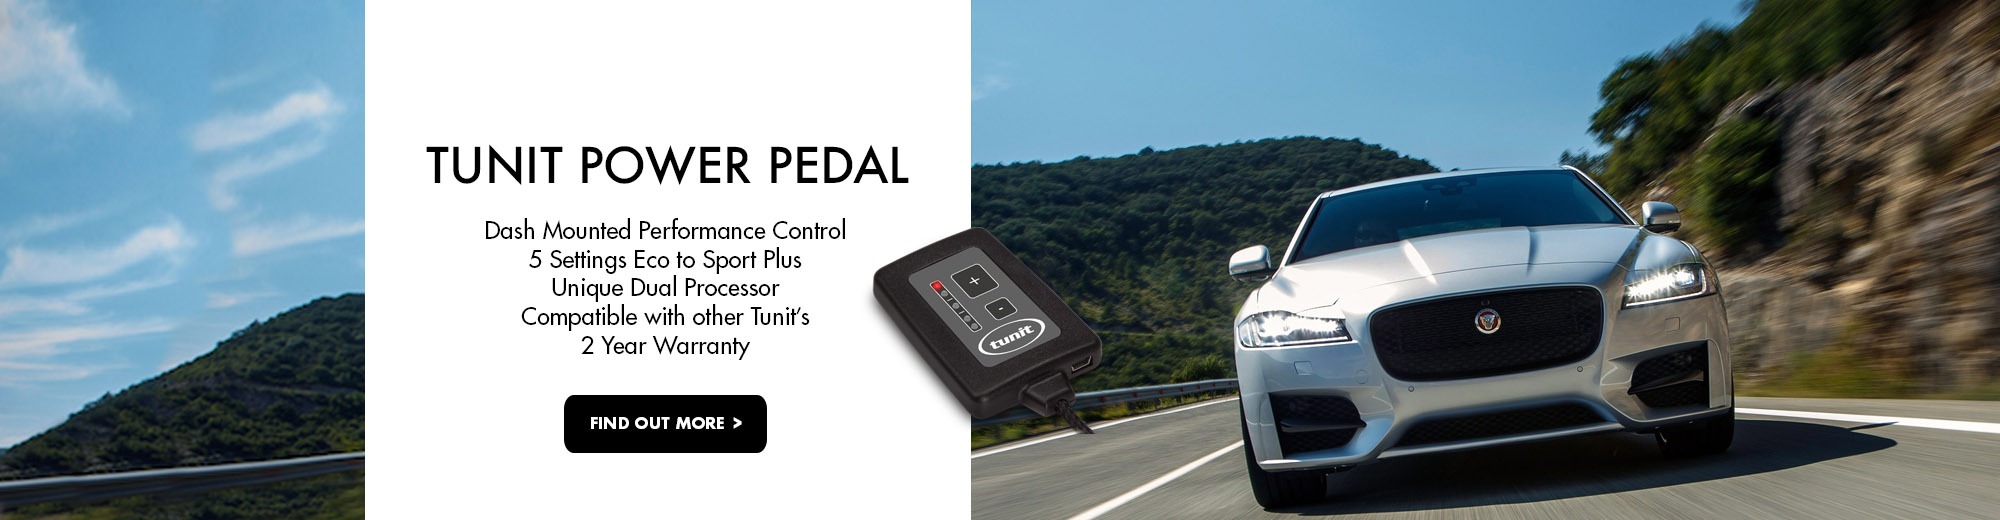 Tunit Power Pedal